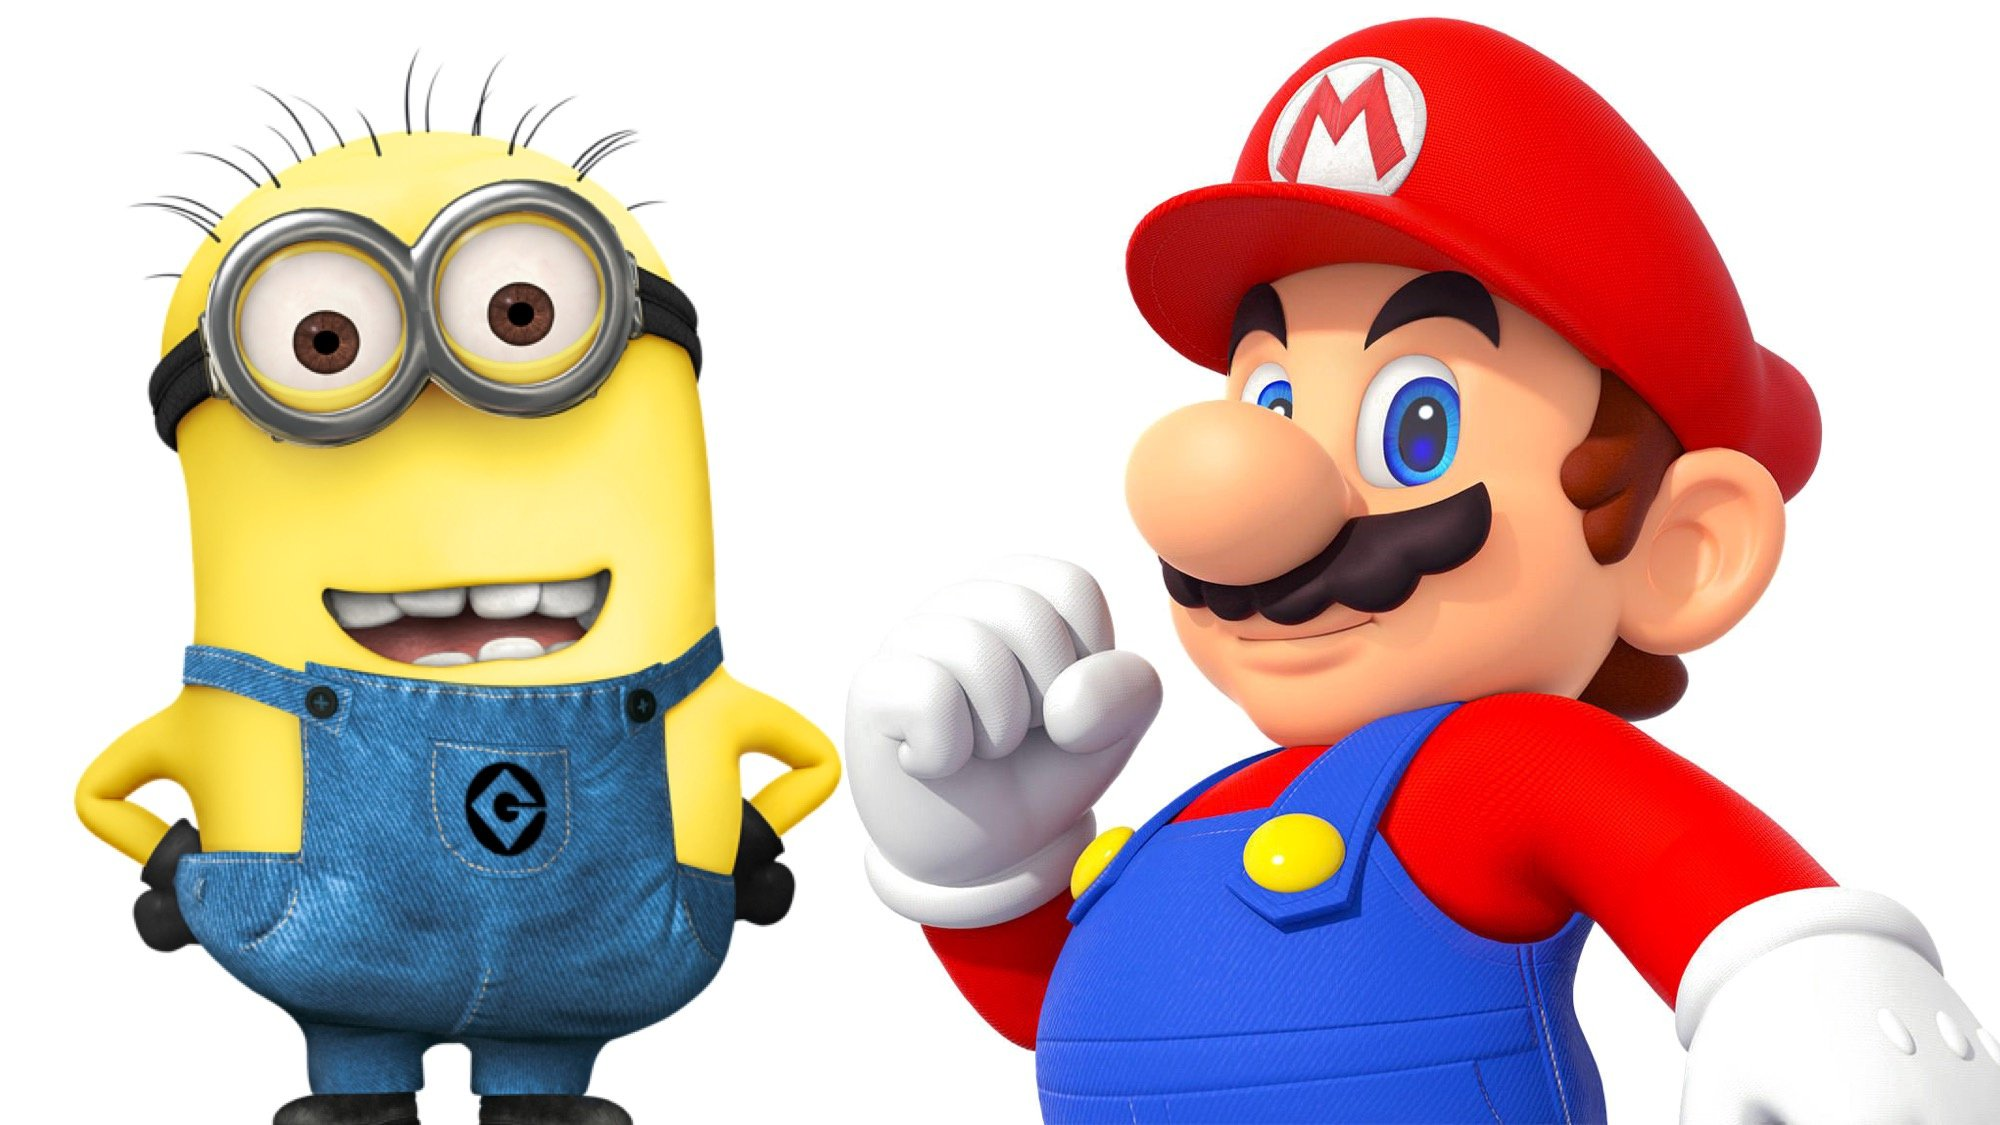 Illumination S Mario Movie Is Moving Along Smoothly Aiming For